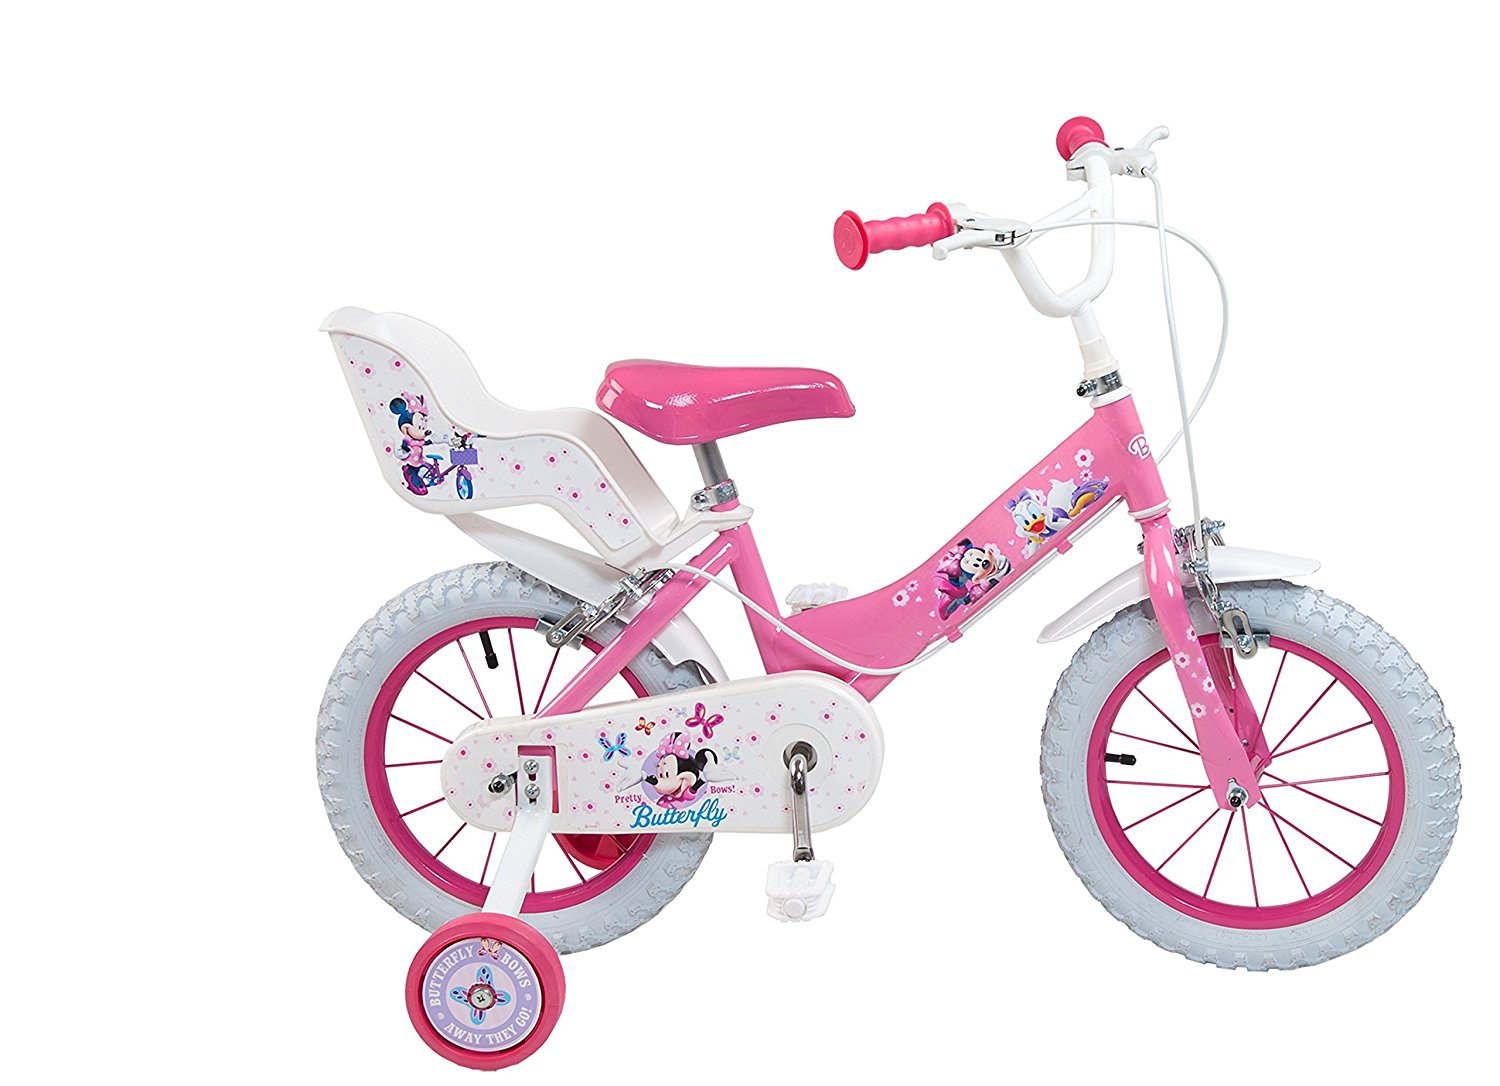 Cocinas Infantiles De Madera Bicicleta Minnie Club House 12 | Inforchess